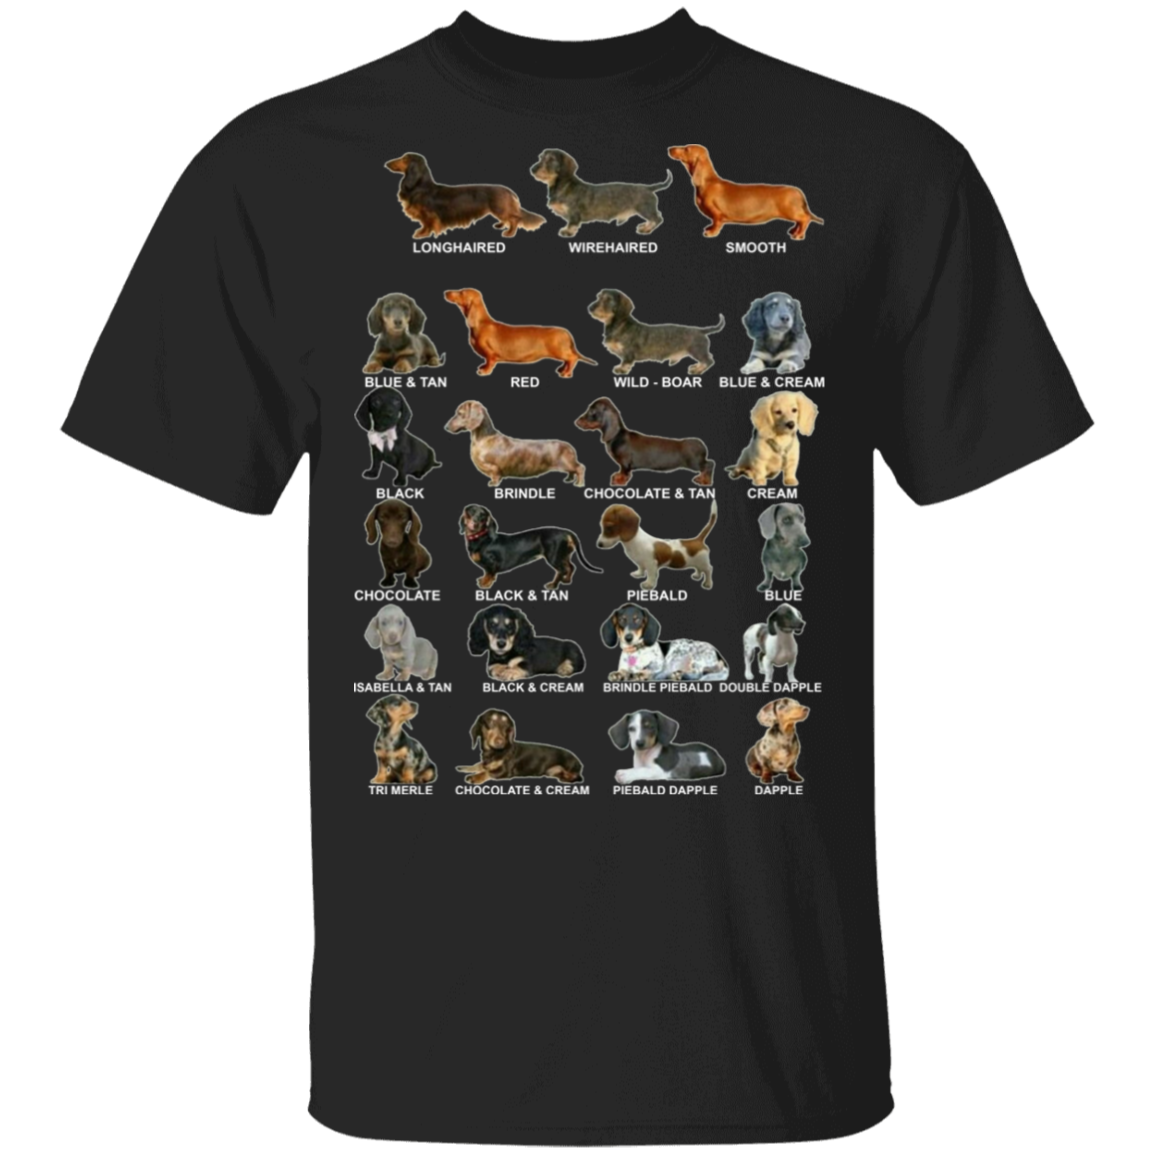 Dachshund Colors & Patterns Wiener Dog Shirt - Dachshund Shirt